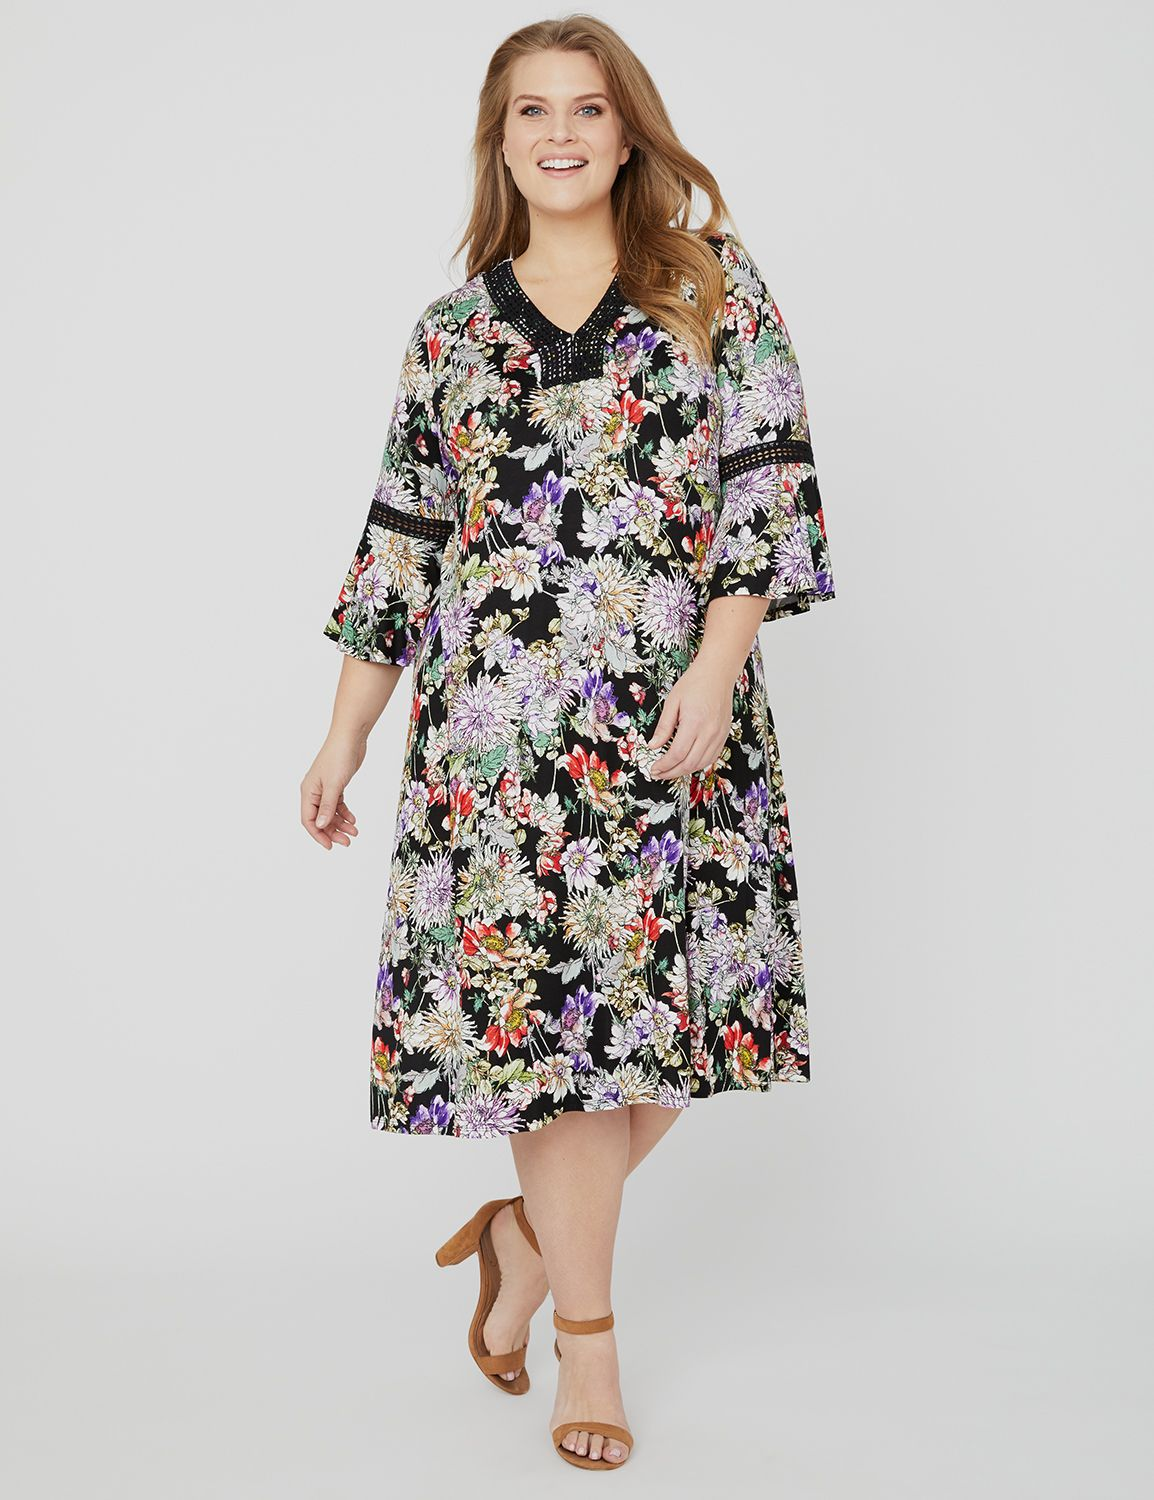 Floral Meadow Dress 1092650 Spense Floral Print Dress w MP-300102324